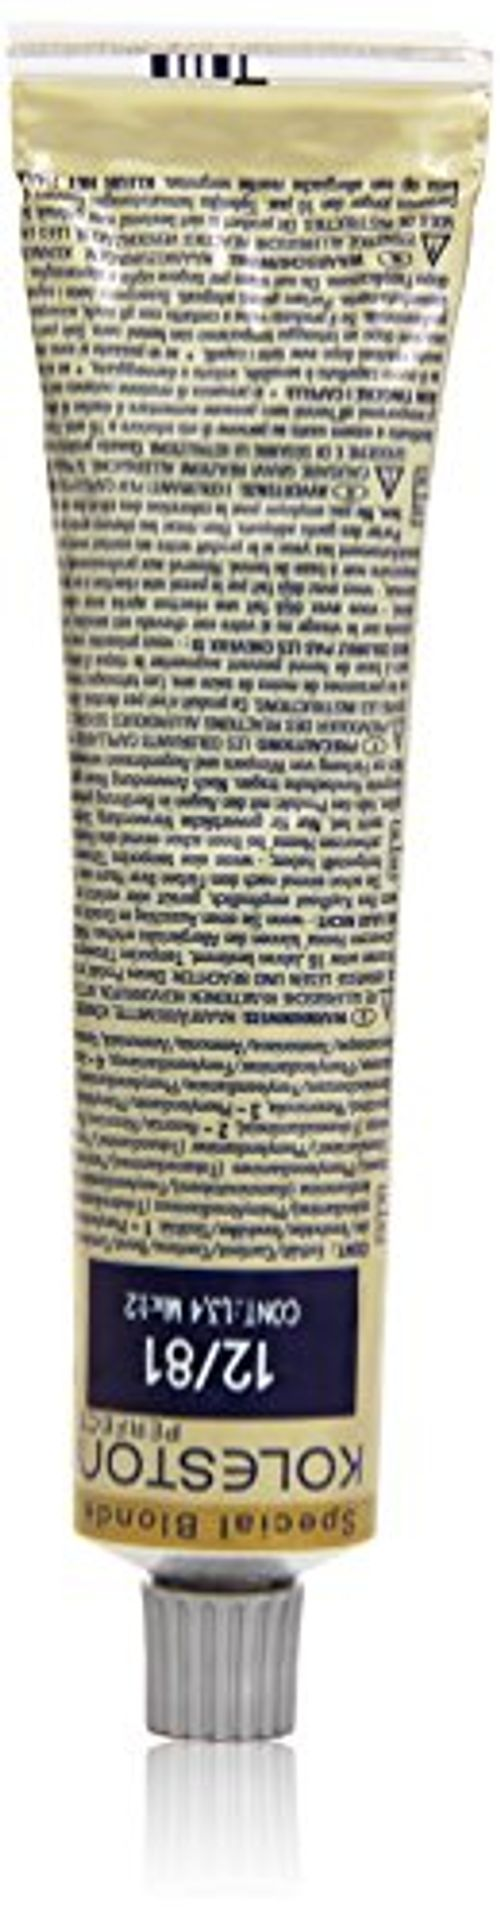 photo Wallpaper of Wella-Koleston   Tinte Para Cabello (60 Ml), 12/81 Rubio Perla-Rubio claro